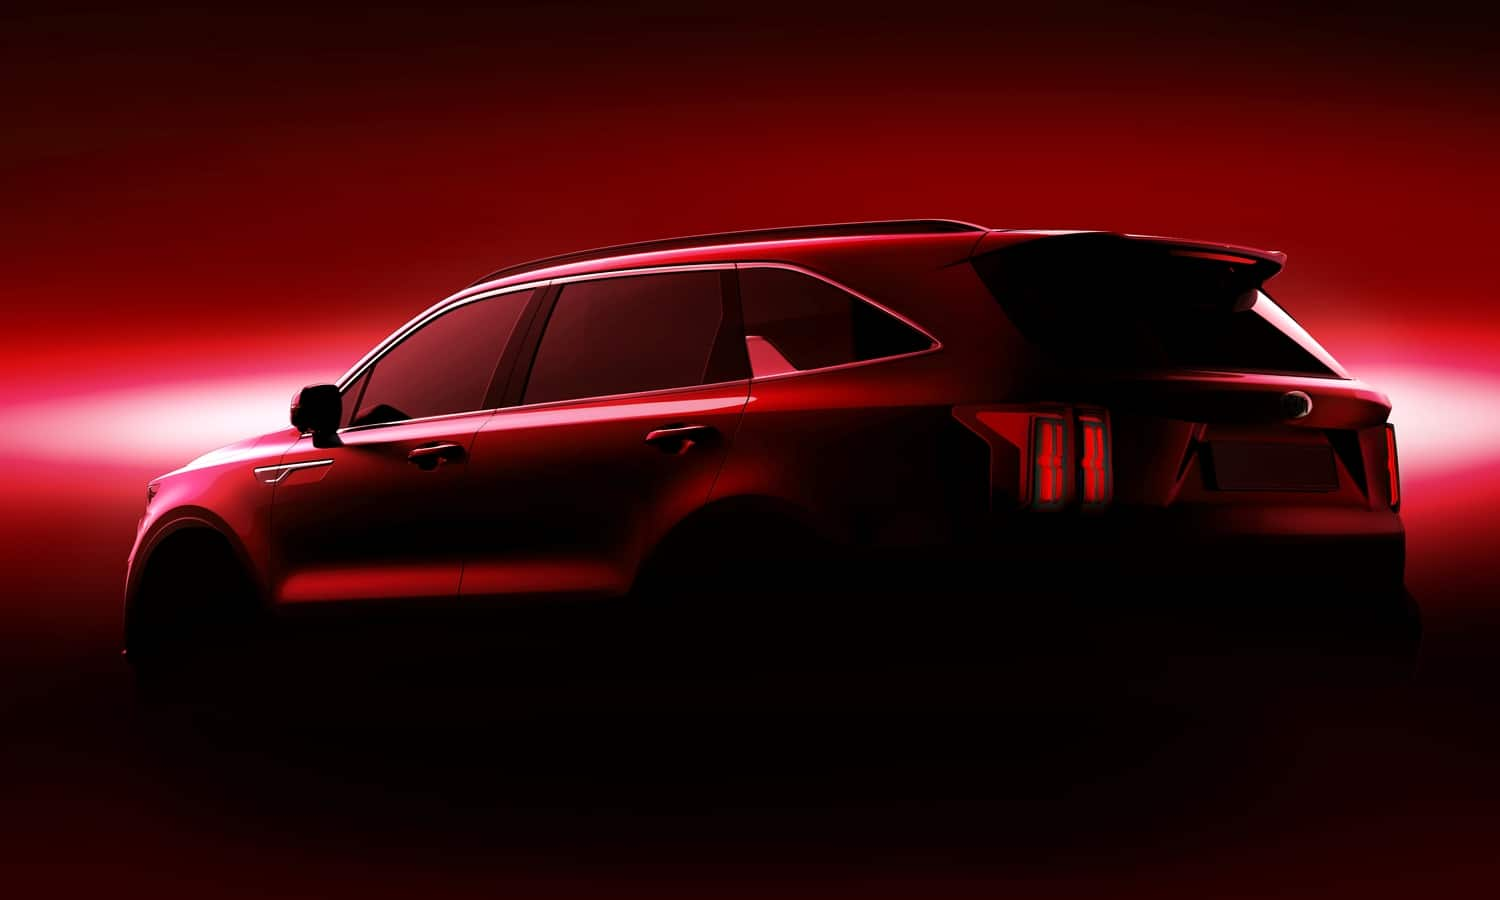 Kia Sorento 2020 Geneva International Motor Show rear teaser